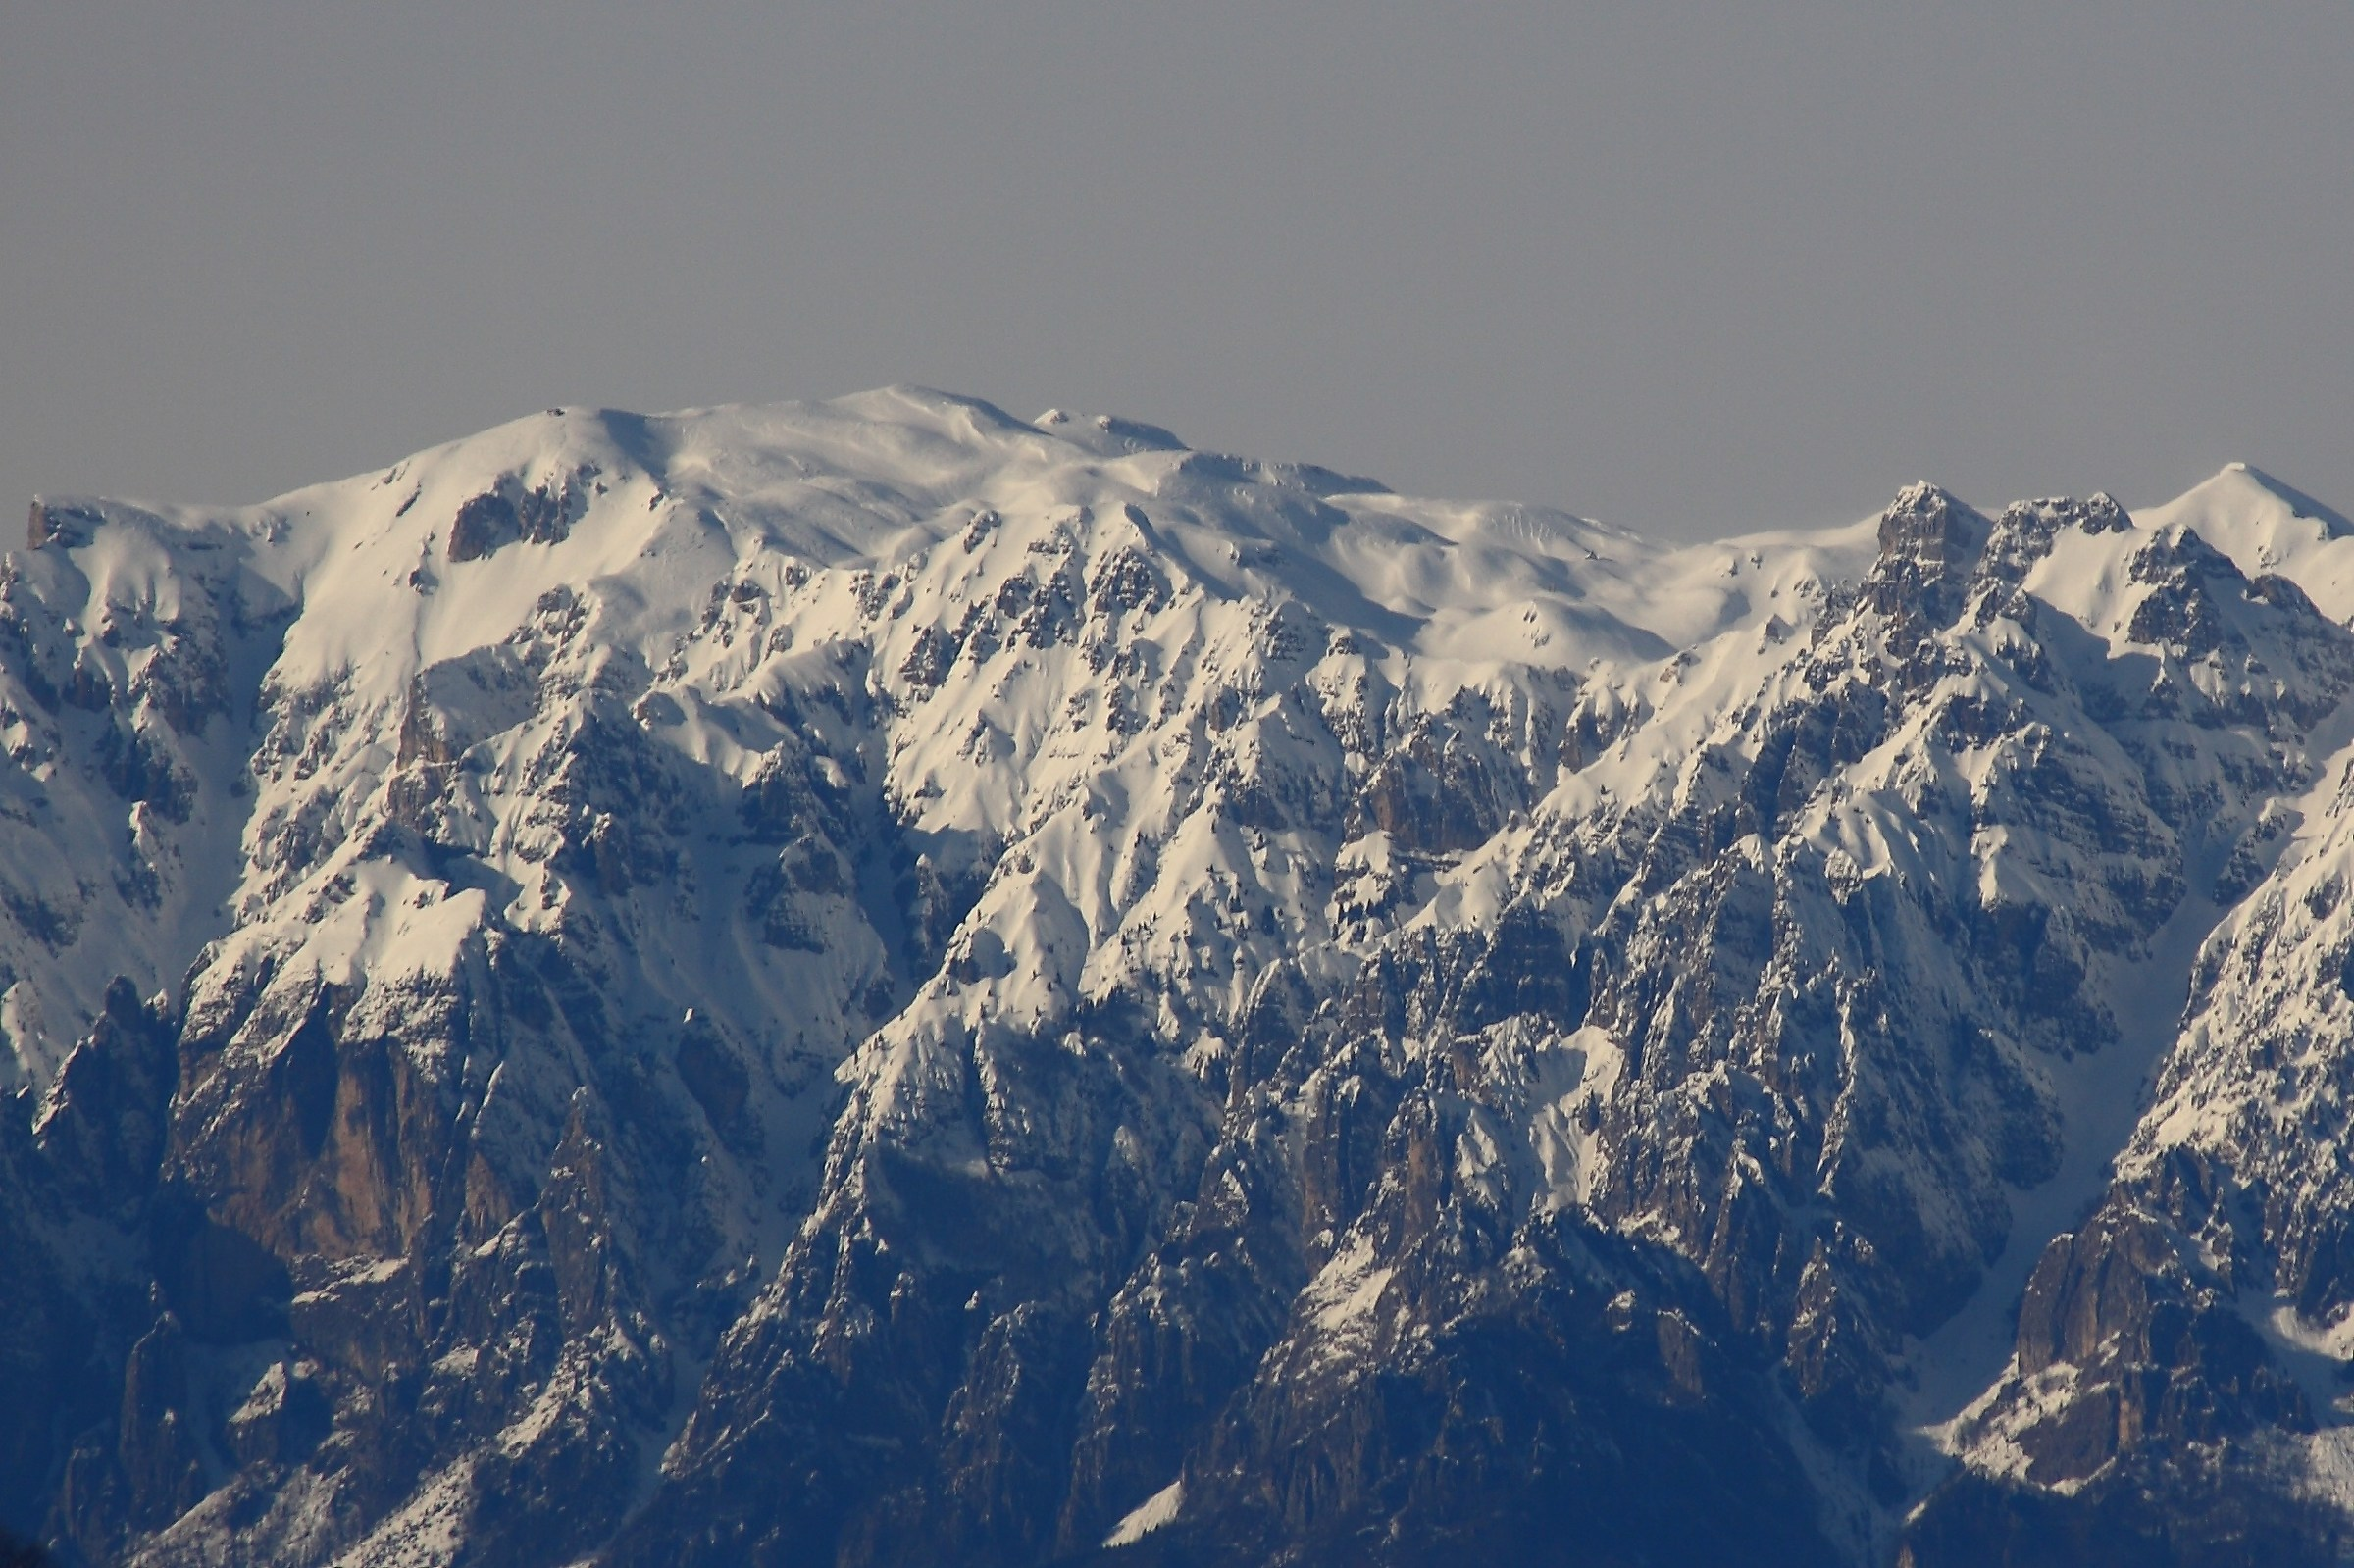 The pasubio from 40km...